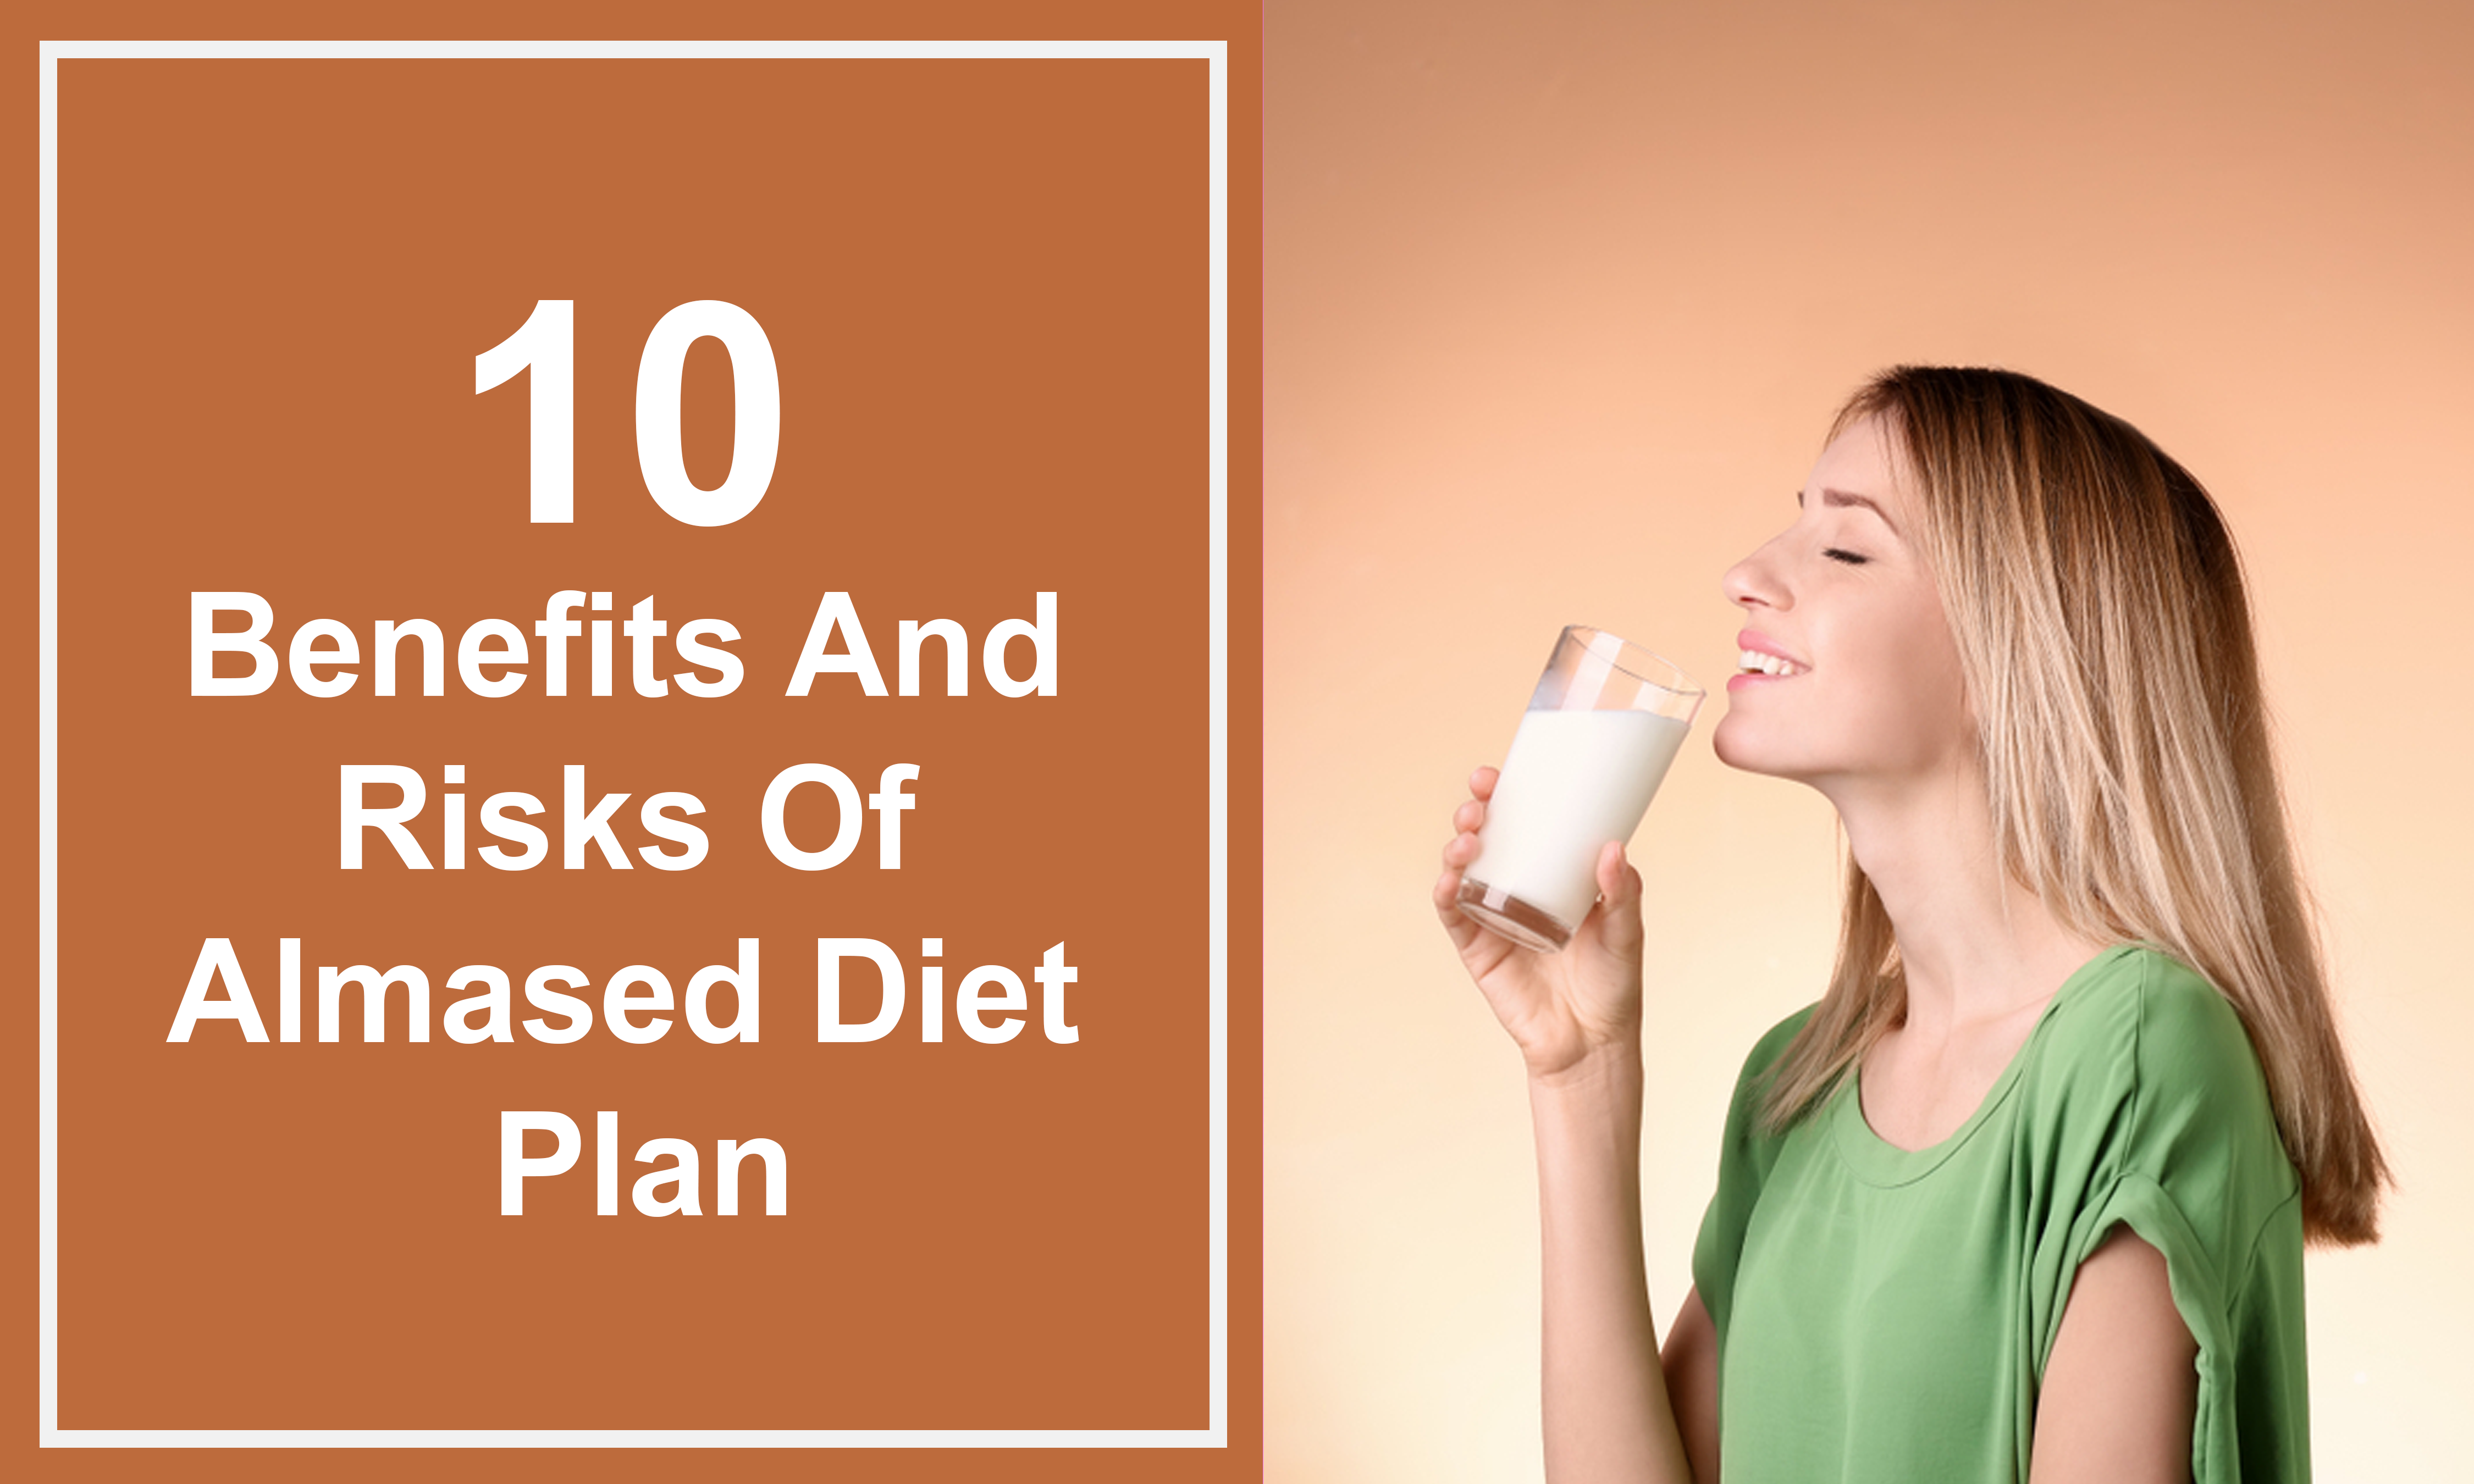 10 Benefits And Risks Of Almased Diet Plan